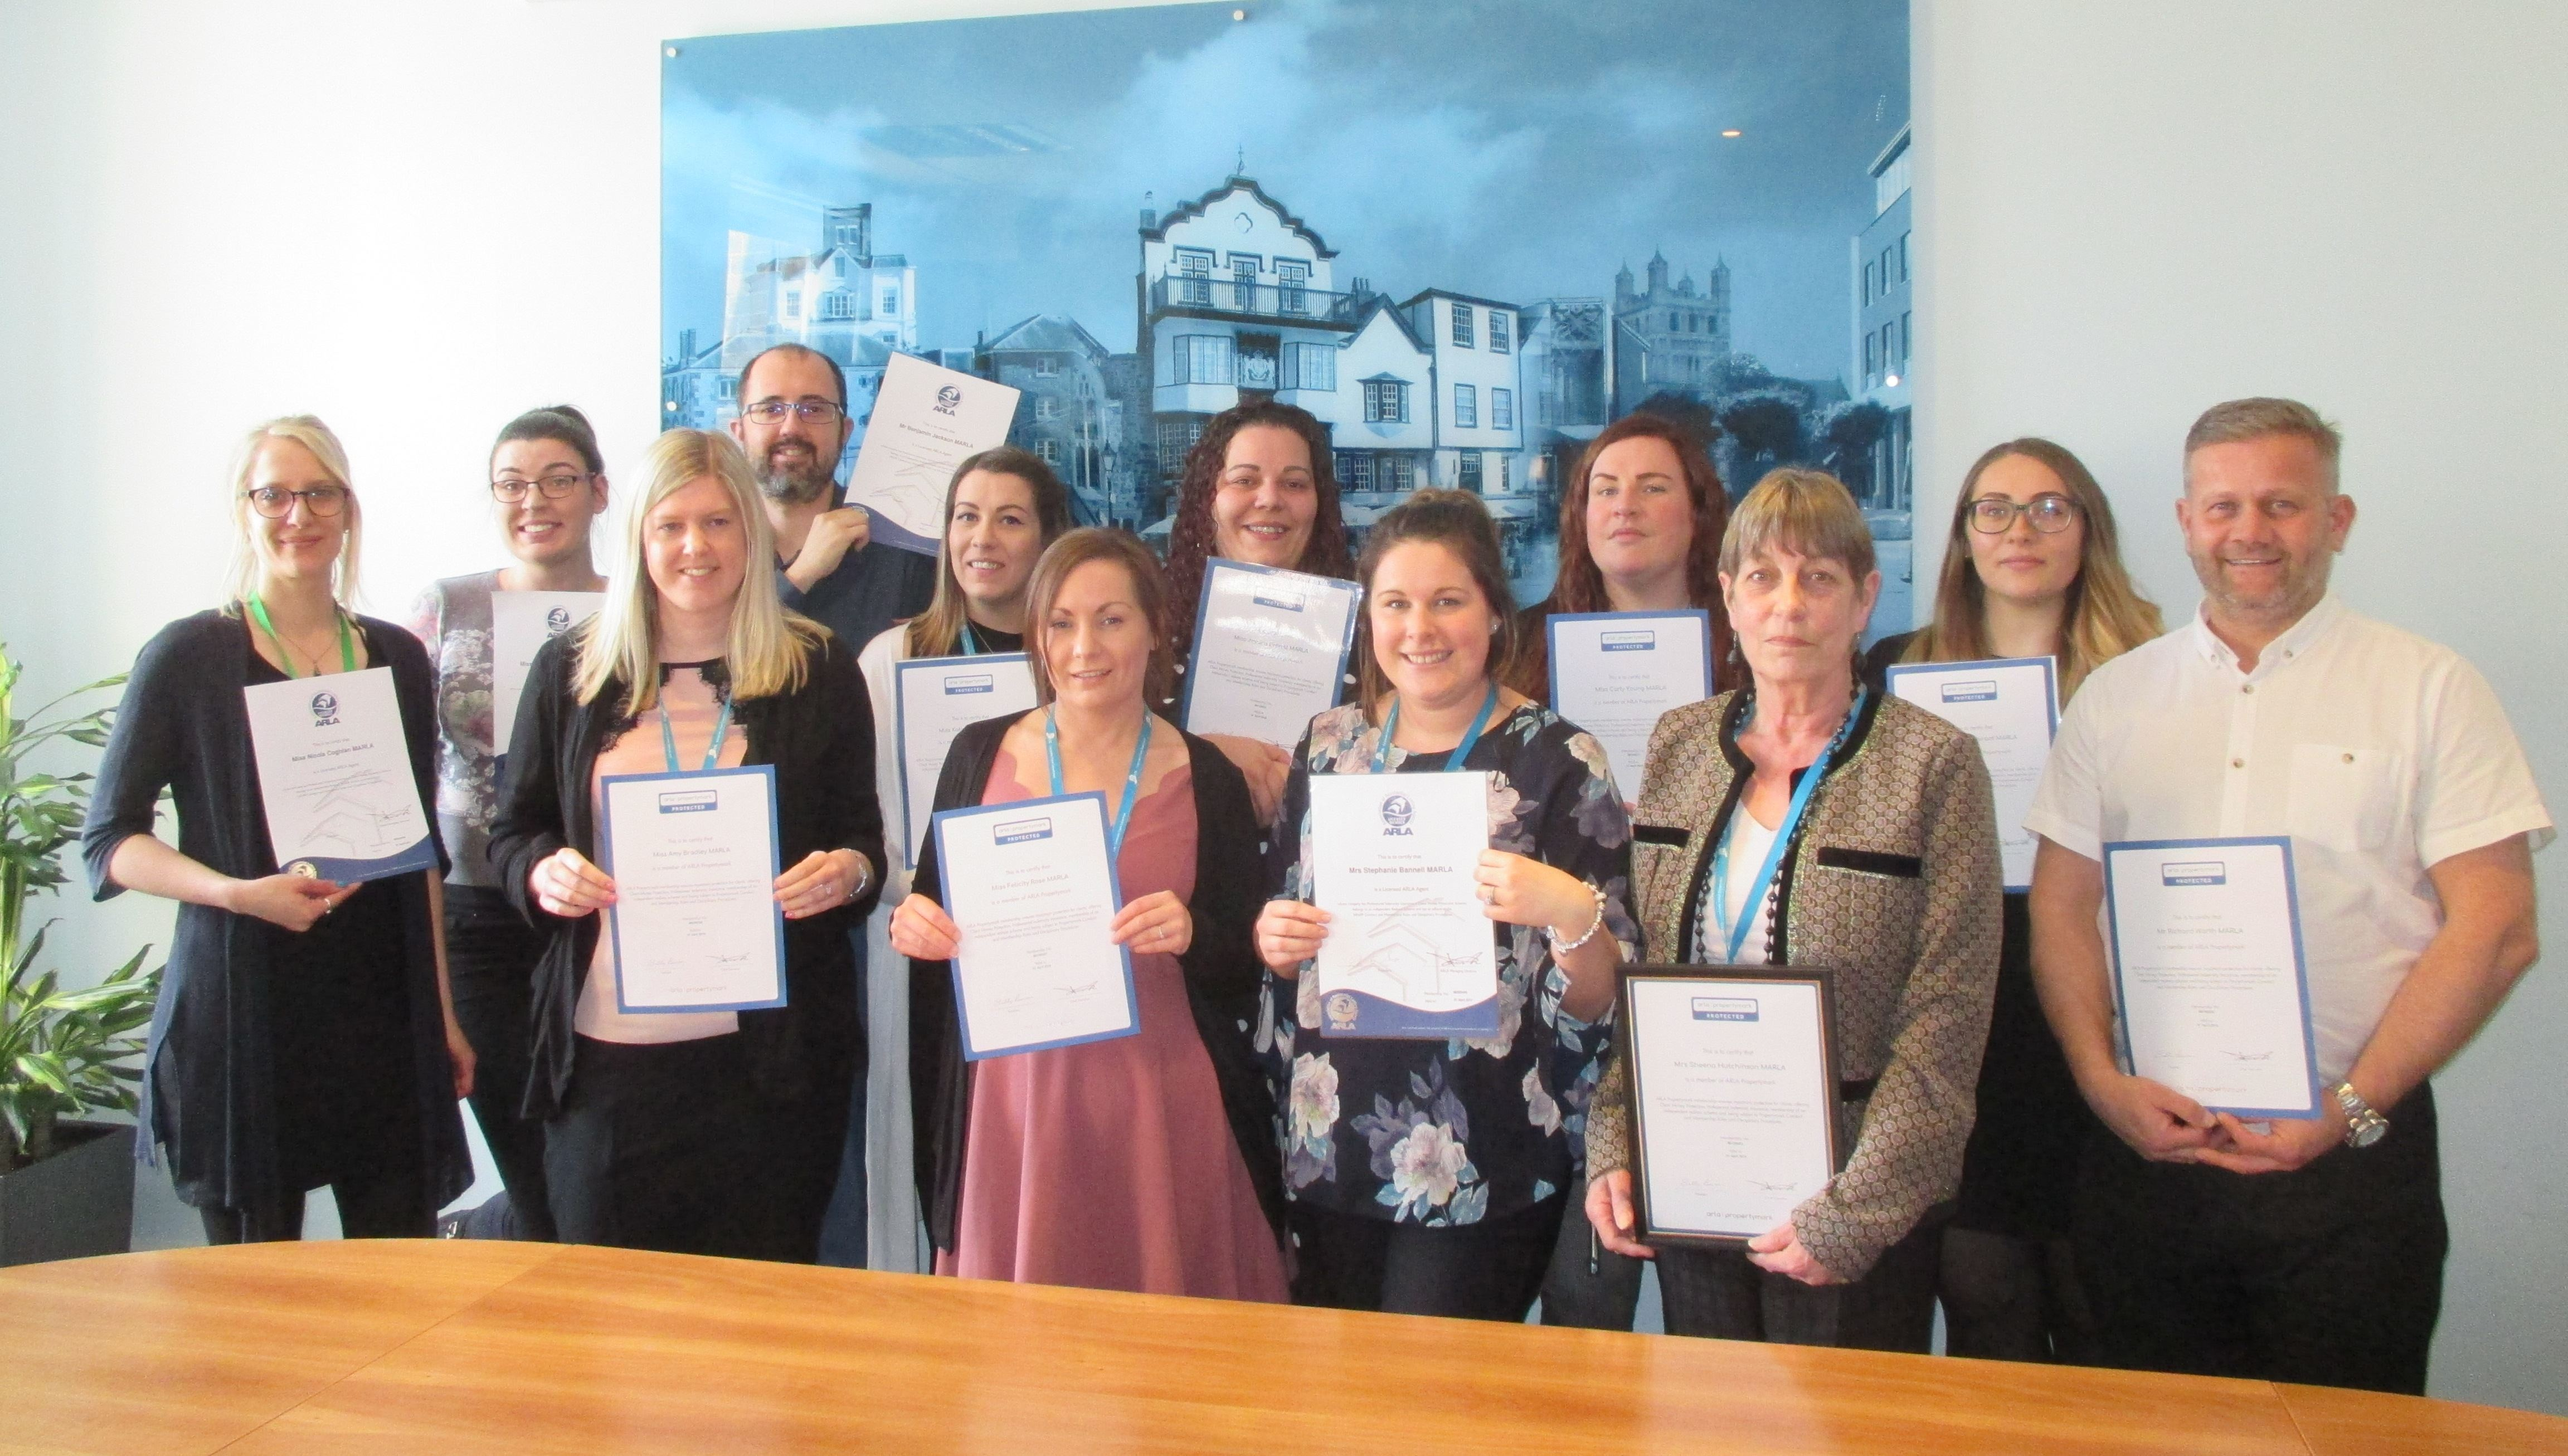 LSL CCD & PRSim celebrate ARLA success